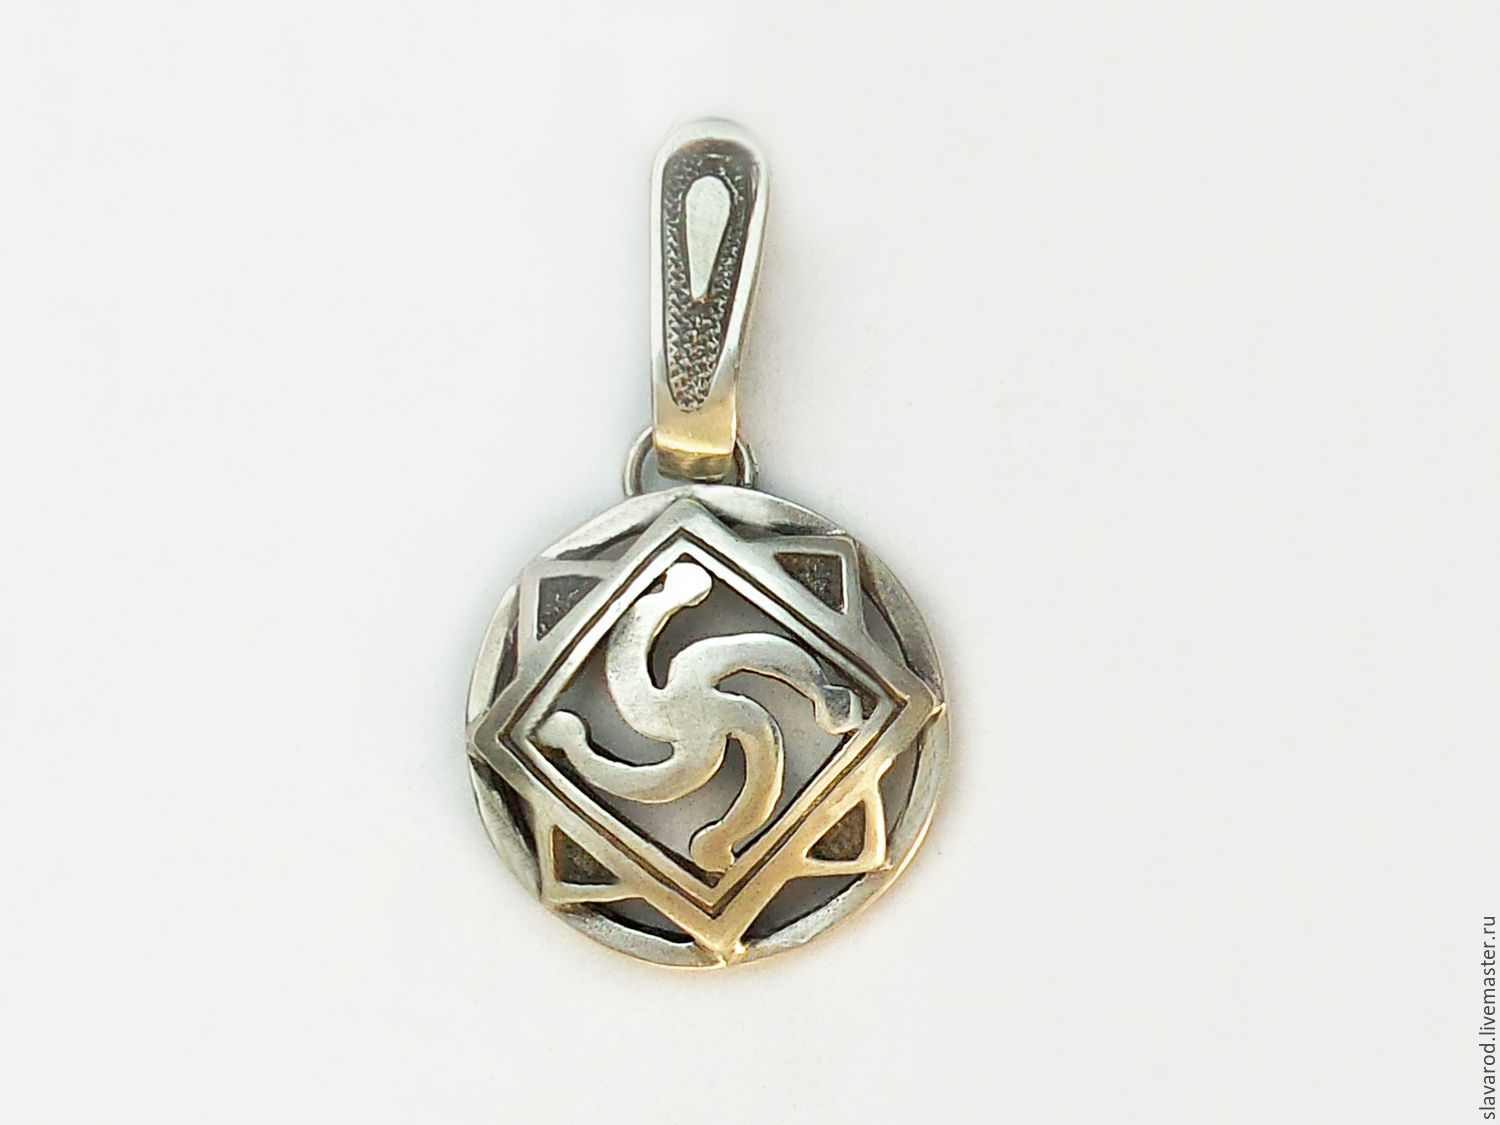 A powerful amulet from the dark forces.  Working on recovering ancestral memory and rasshirenie consciousness.